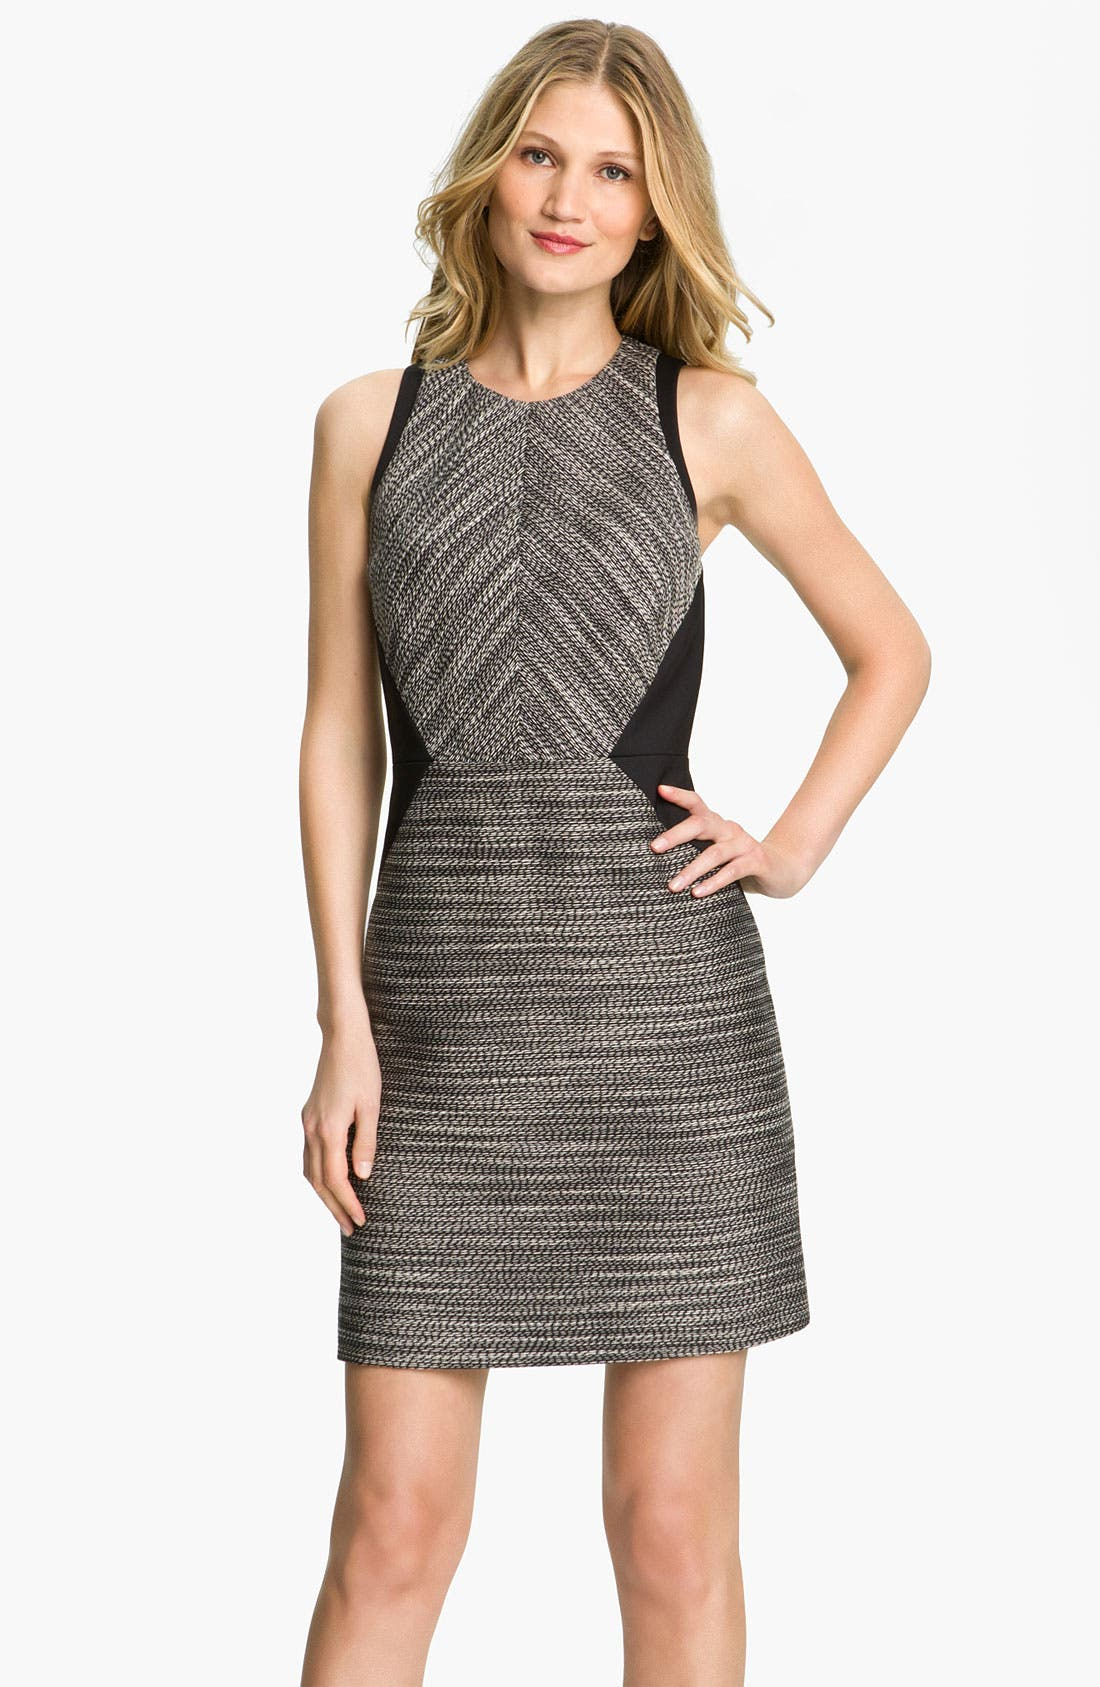 Alternate Image 1 Selected - Kenneth Cole New York 'Isabella' Twisted Yarn Dress (Petite)